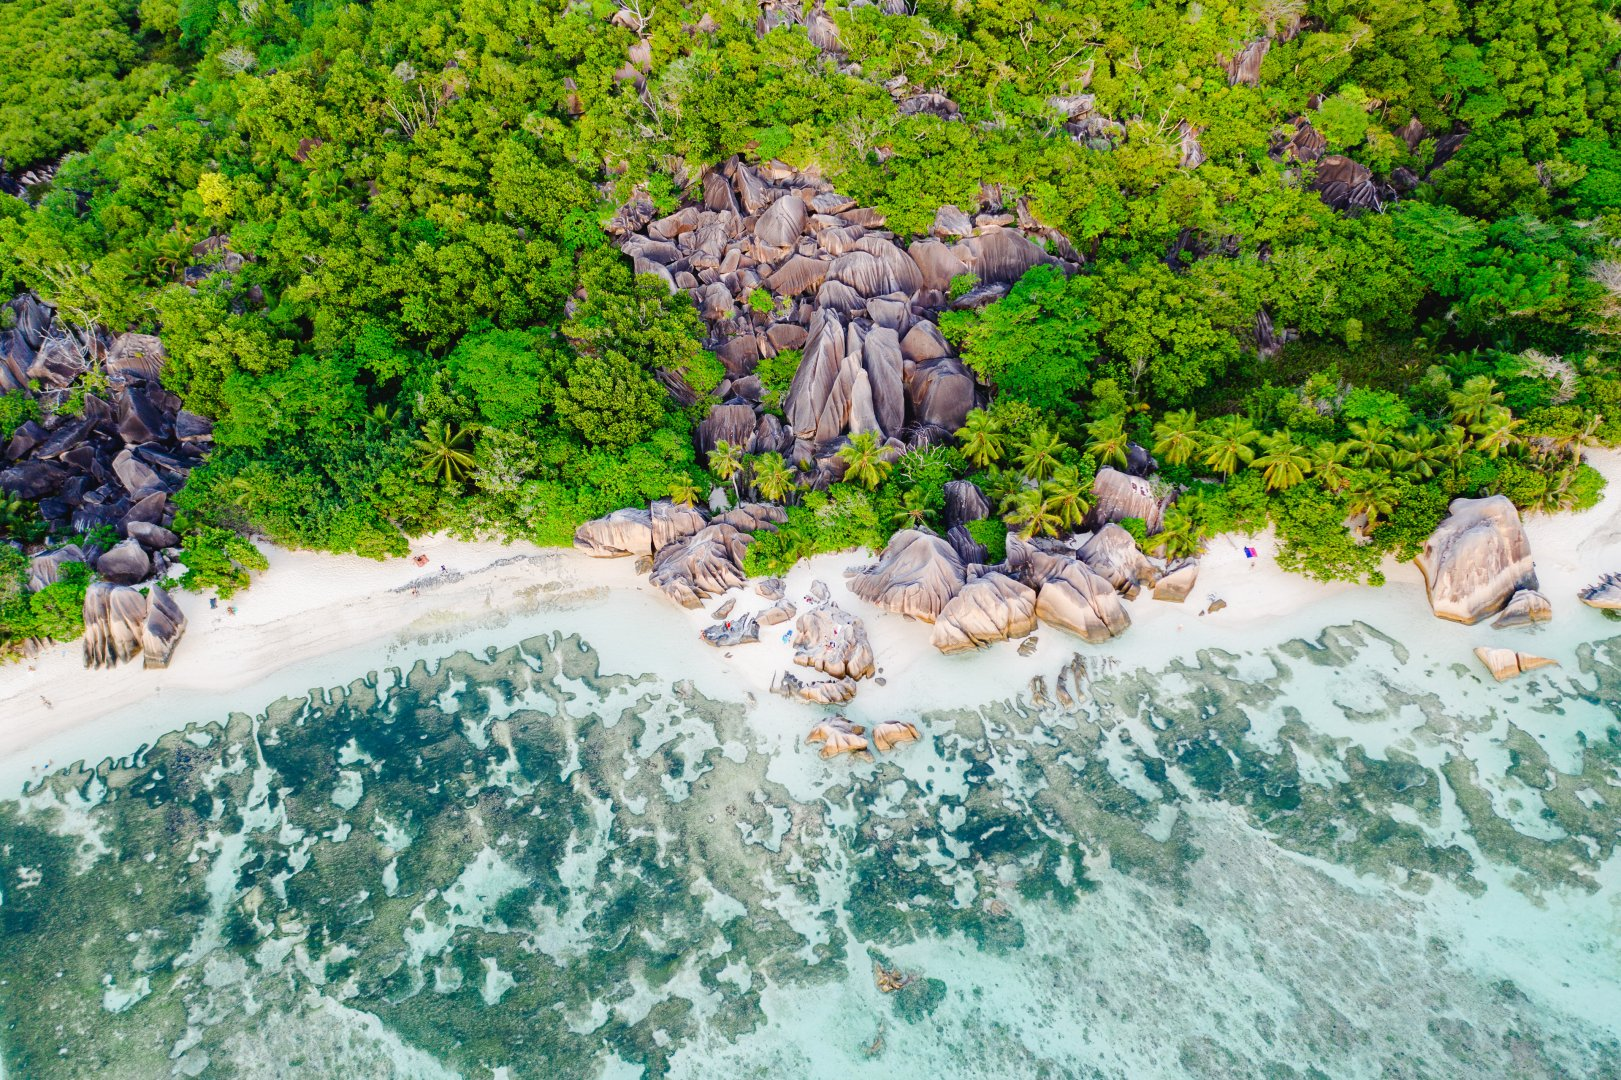 Nature Water Natural landscape Water resources Vegetation Aerial photography Watercourse Tree Geological phenomenon Rock Coast River Landscape Bay Photography Sea Bank National park Coastal and oceanic landforms Tourism Vacation Bird's-eye view Estate Terrain House Inlet